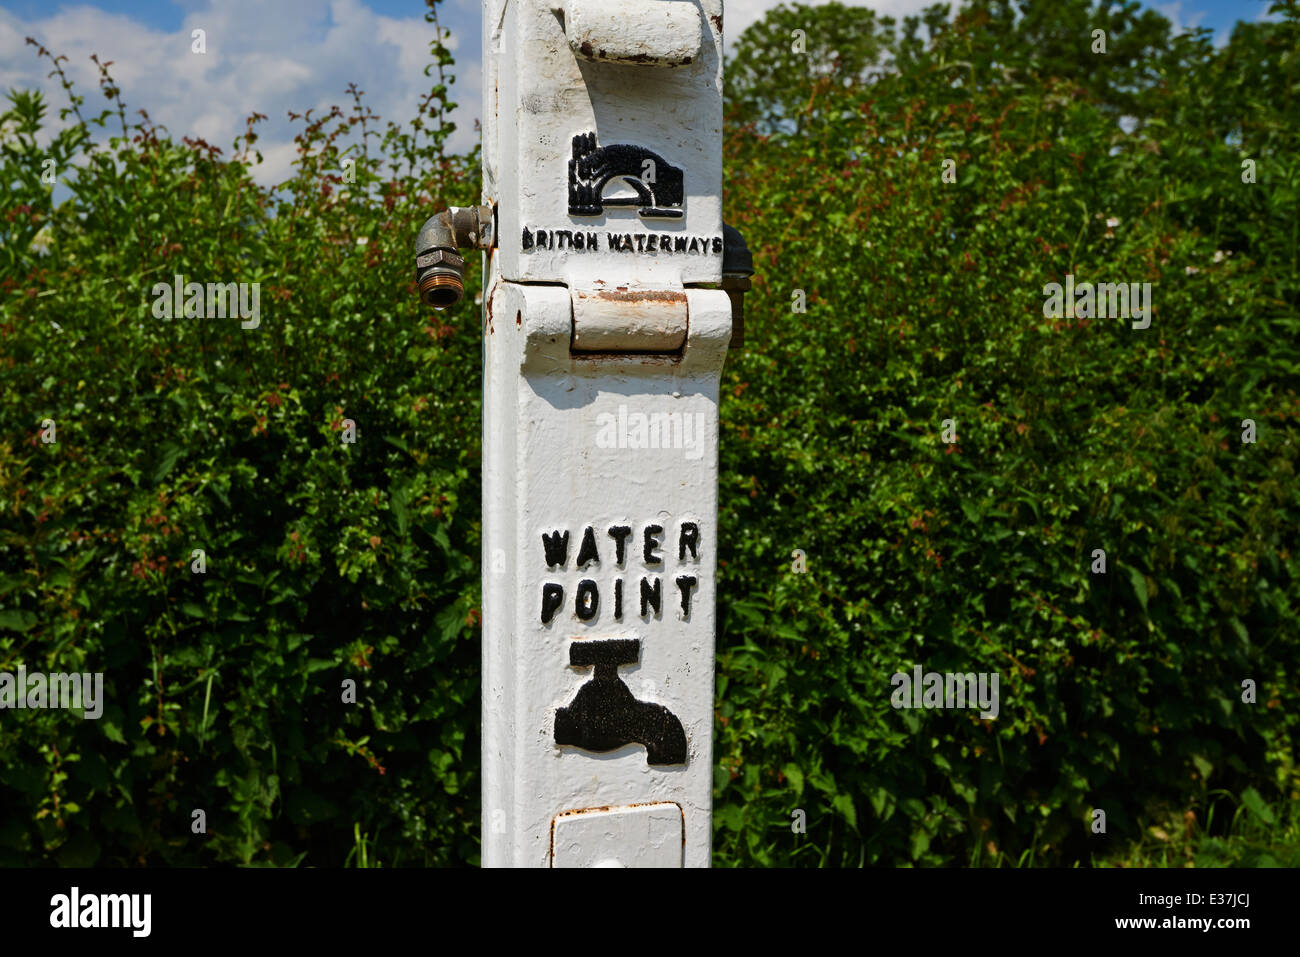 British Waterways Water Point along the canal Foxton Locks Market Harborough Leicestershire UK - Stock Image